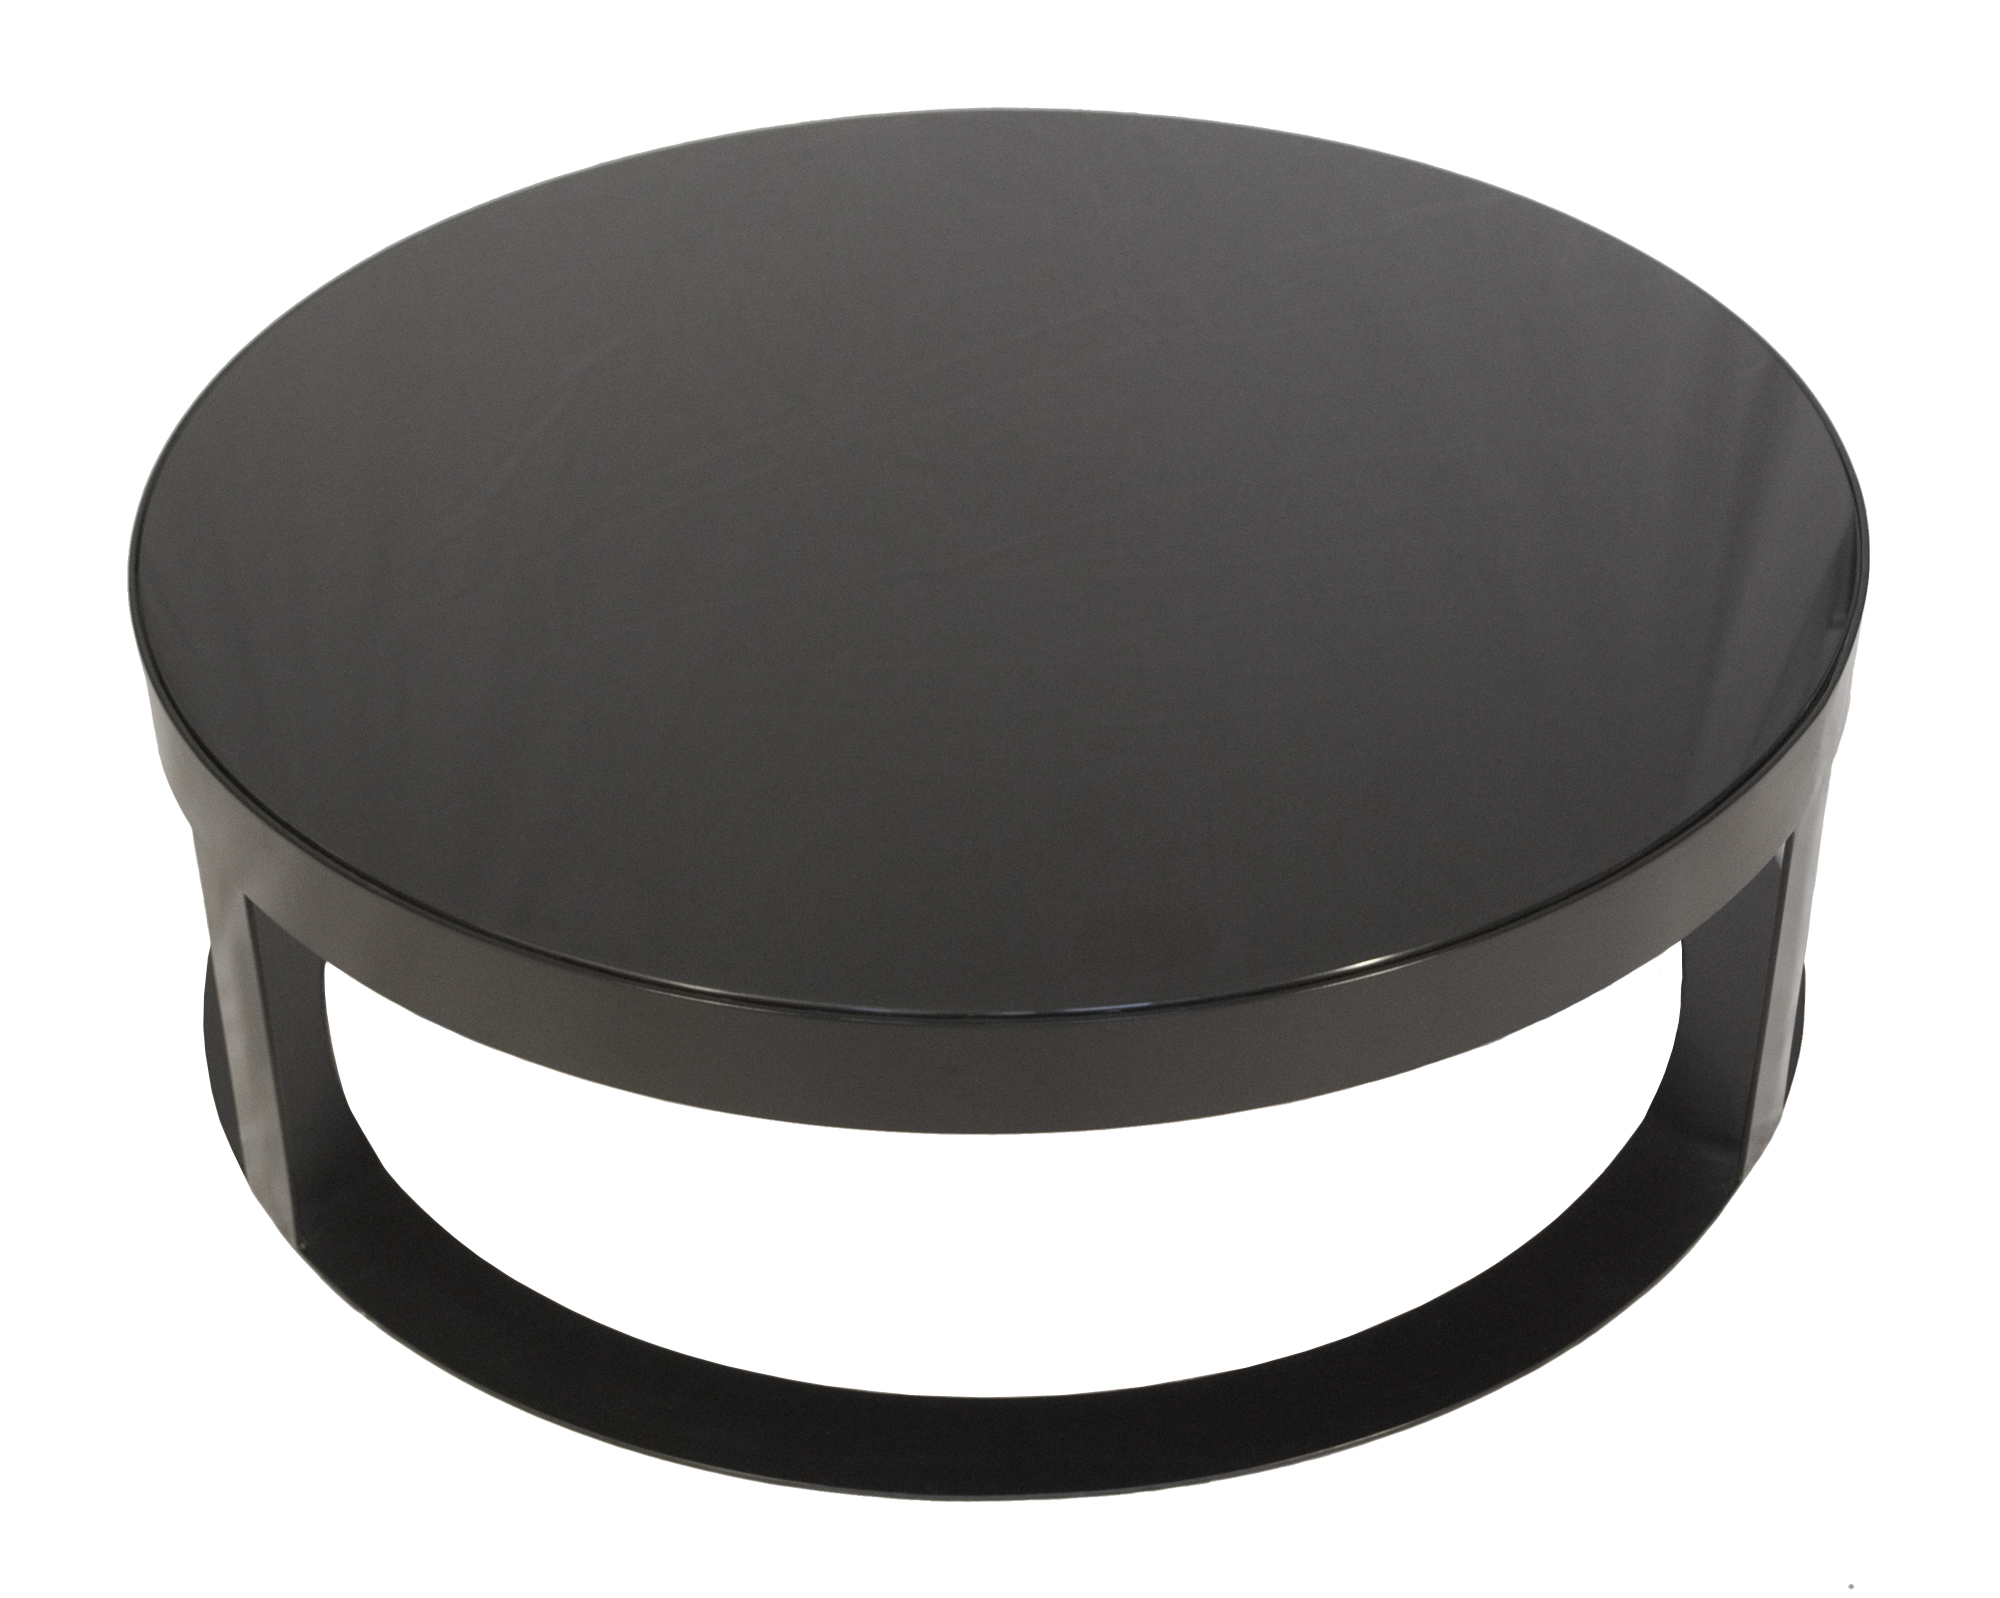 Other Gallery For Amazing Coffee Table With Using Round Metal Coffee Table Round Metal Coffee Table With Glass Round Black Glass Coffee Table (Image 7 of 10)